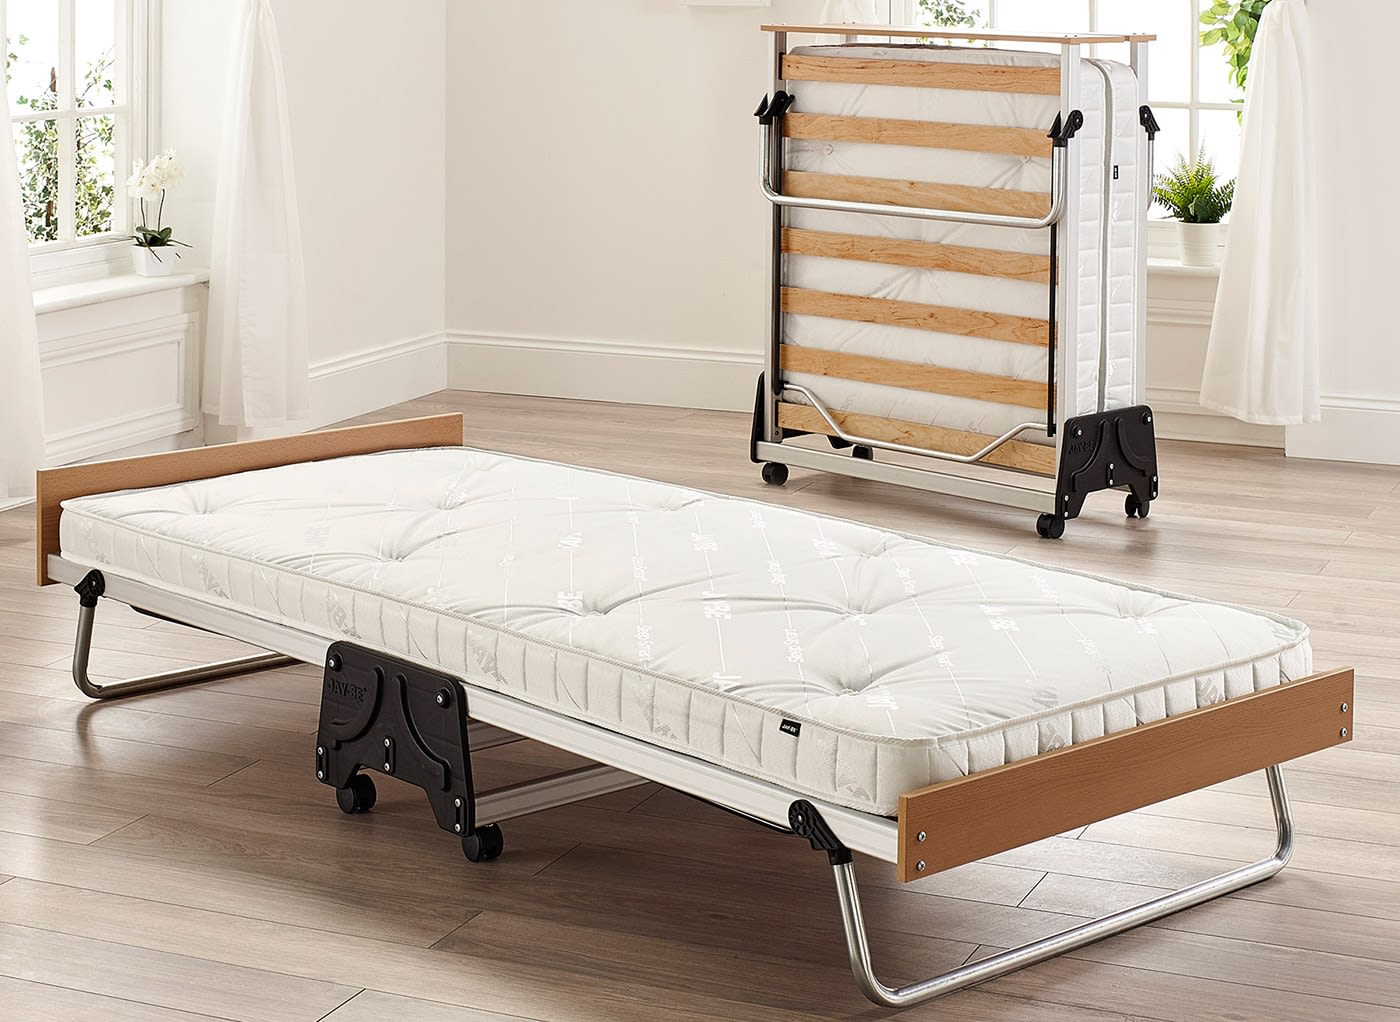 King Single Beds Sa : Tempur original deluxe and luxury base divan bed dark